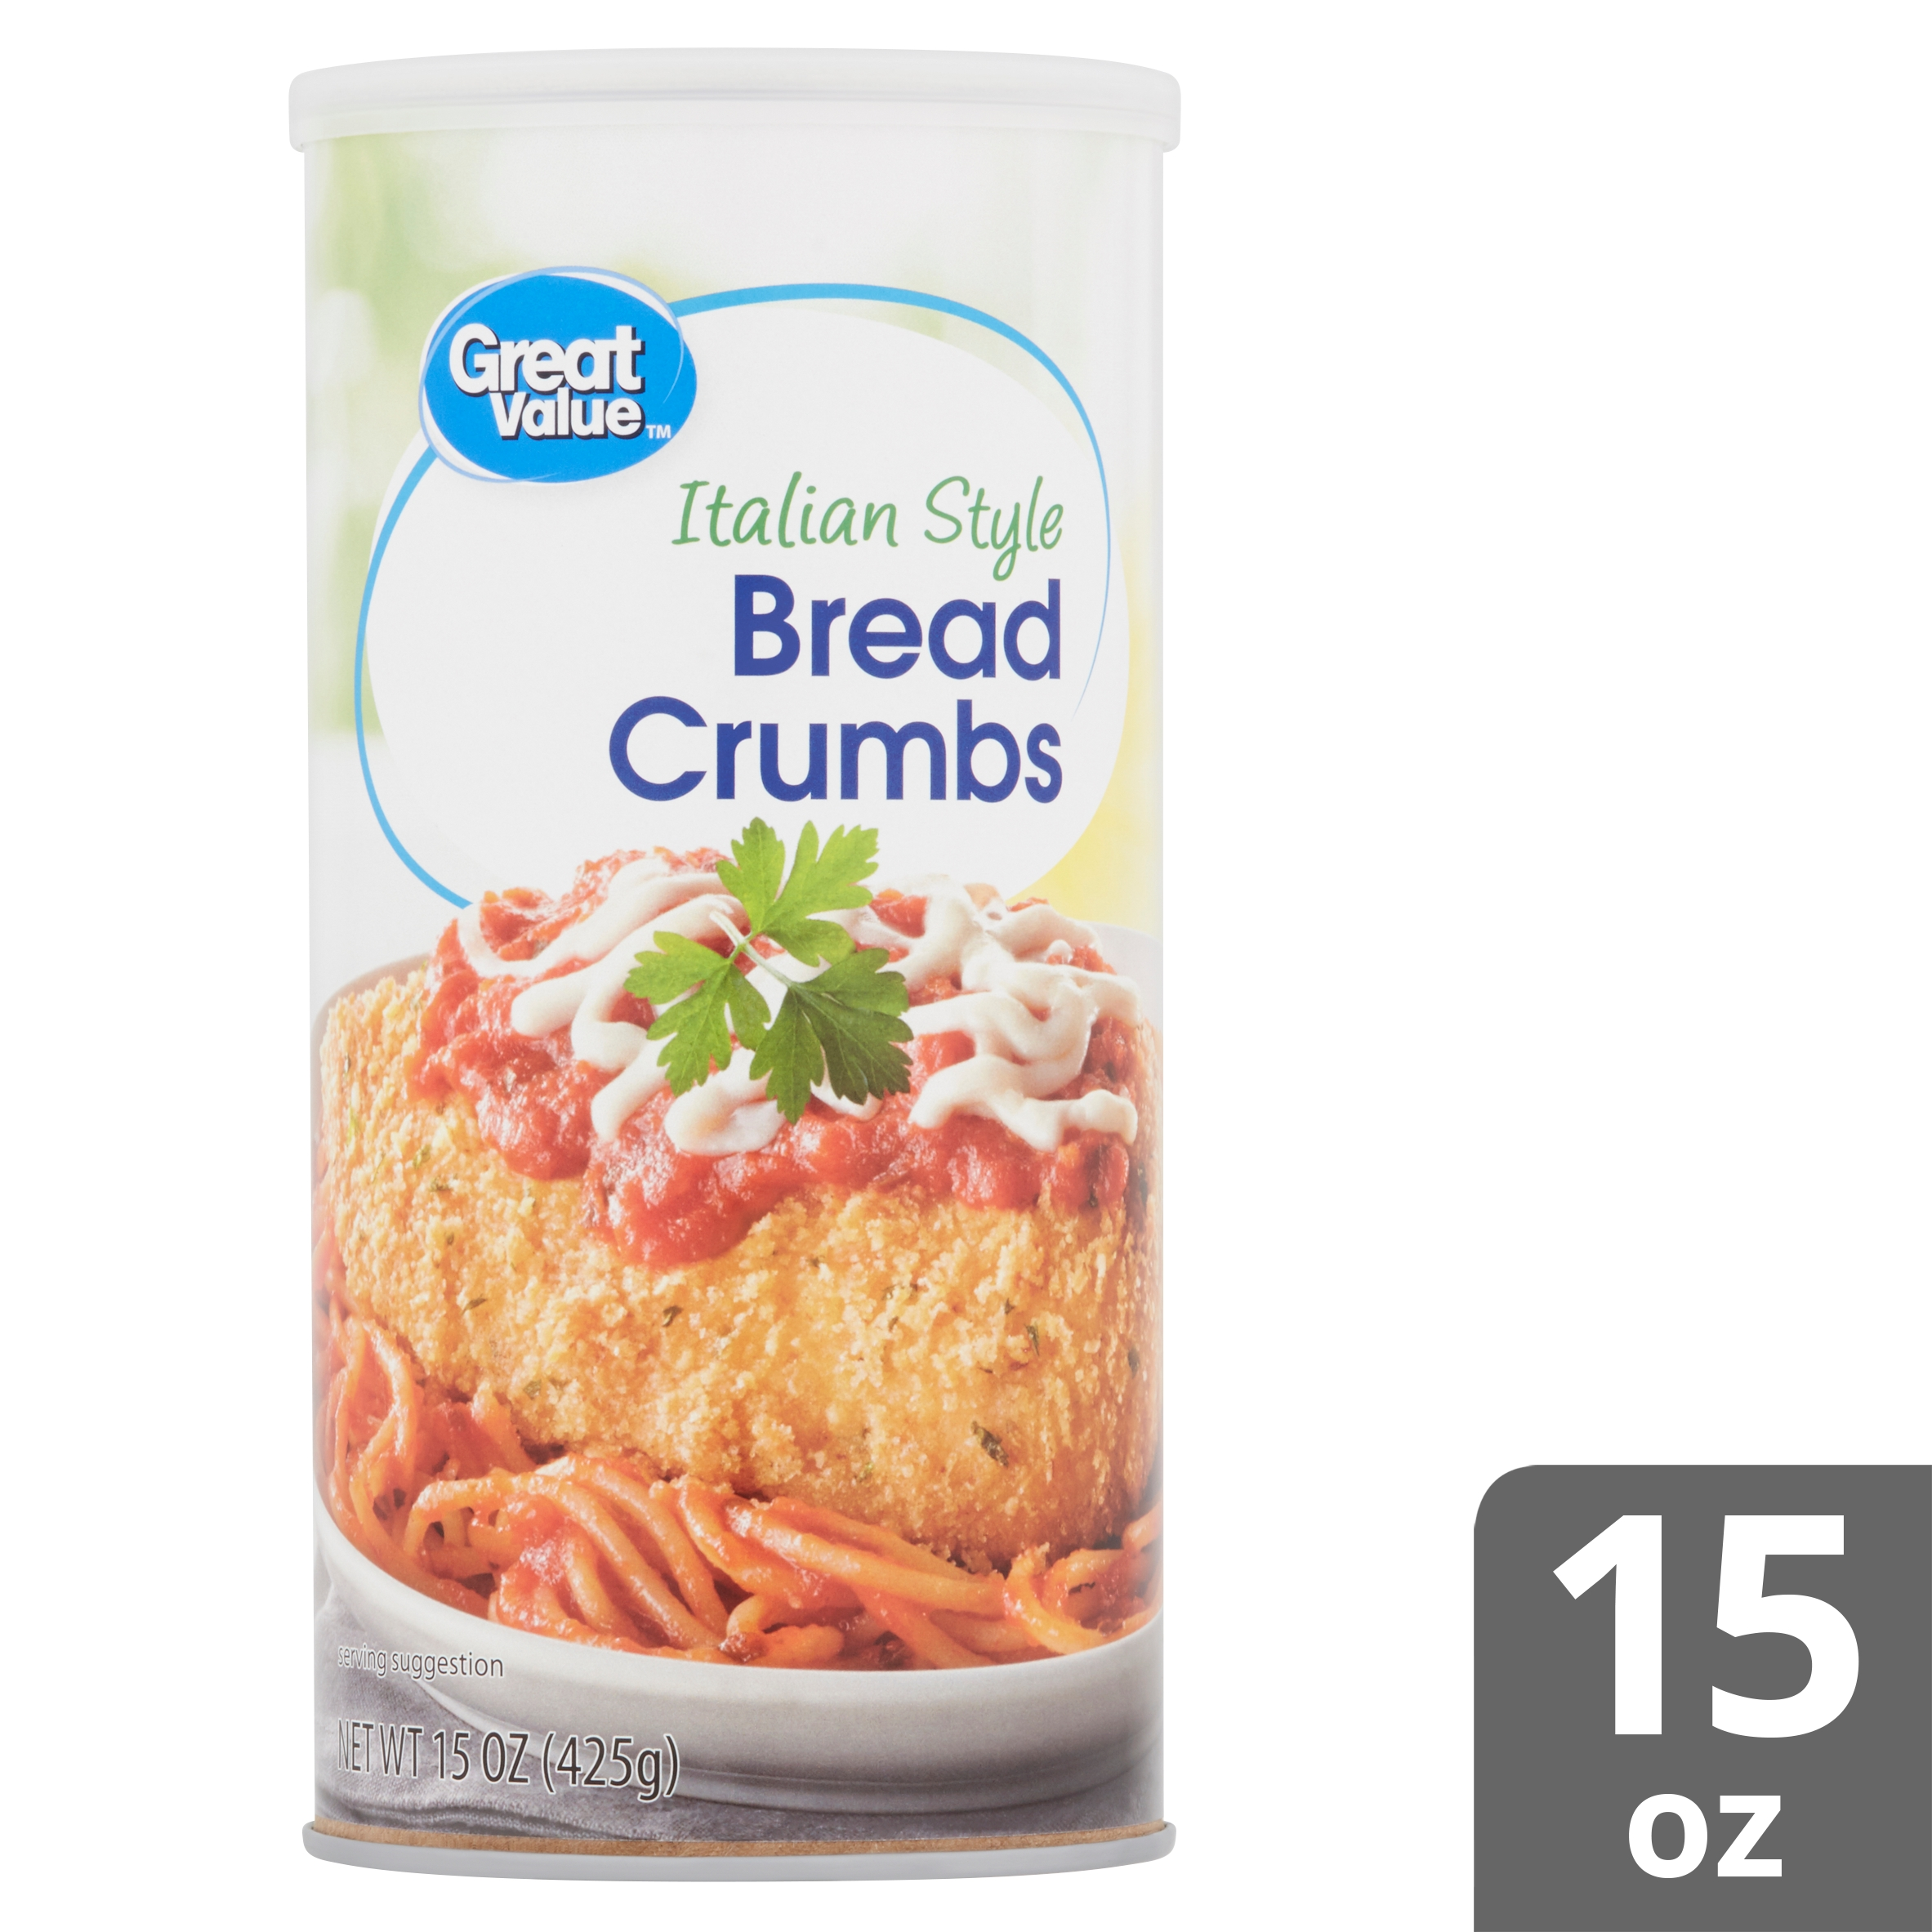 Great Value Italian Style Bread Crumbs 15 Oz Walmart Com Walmart Com